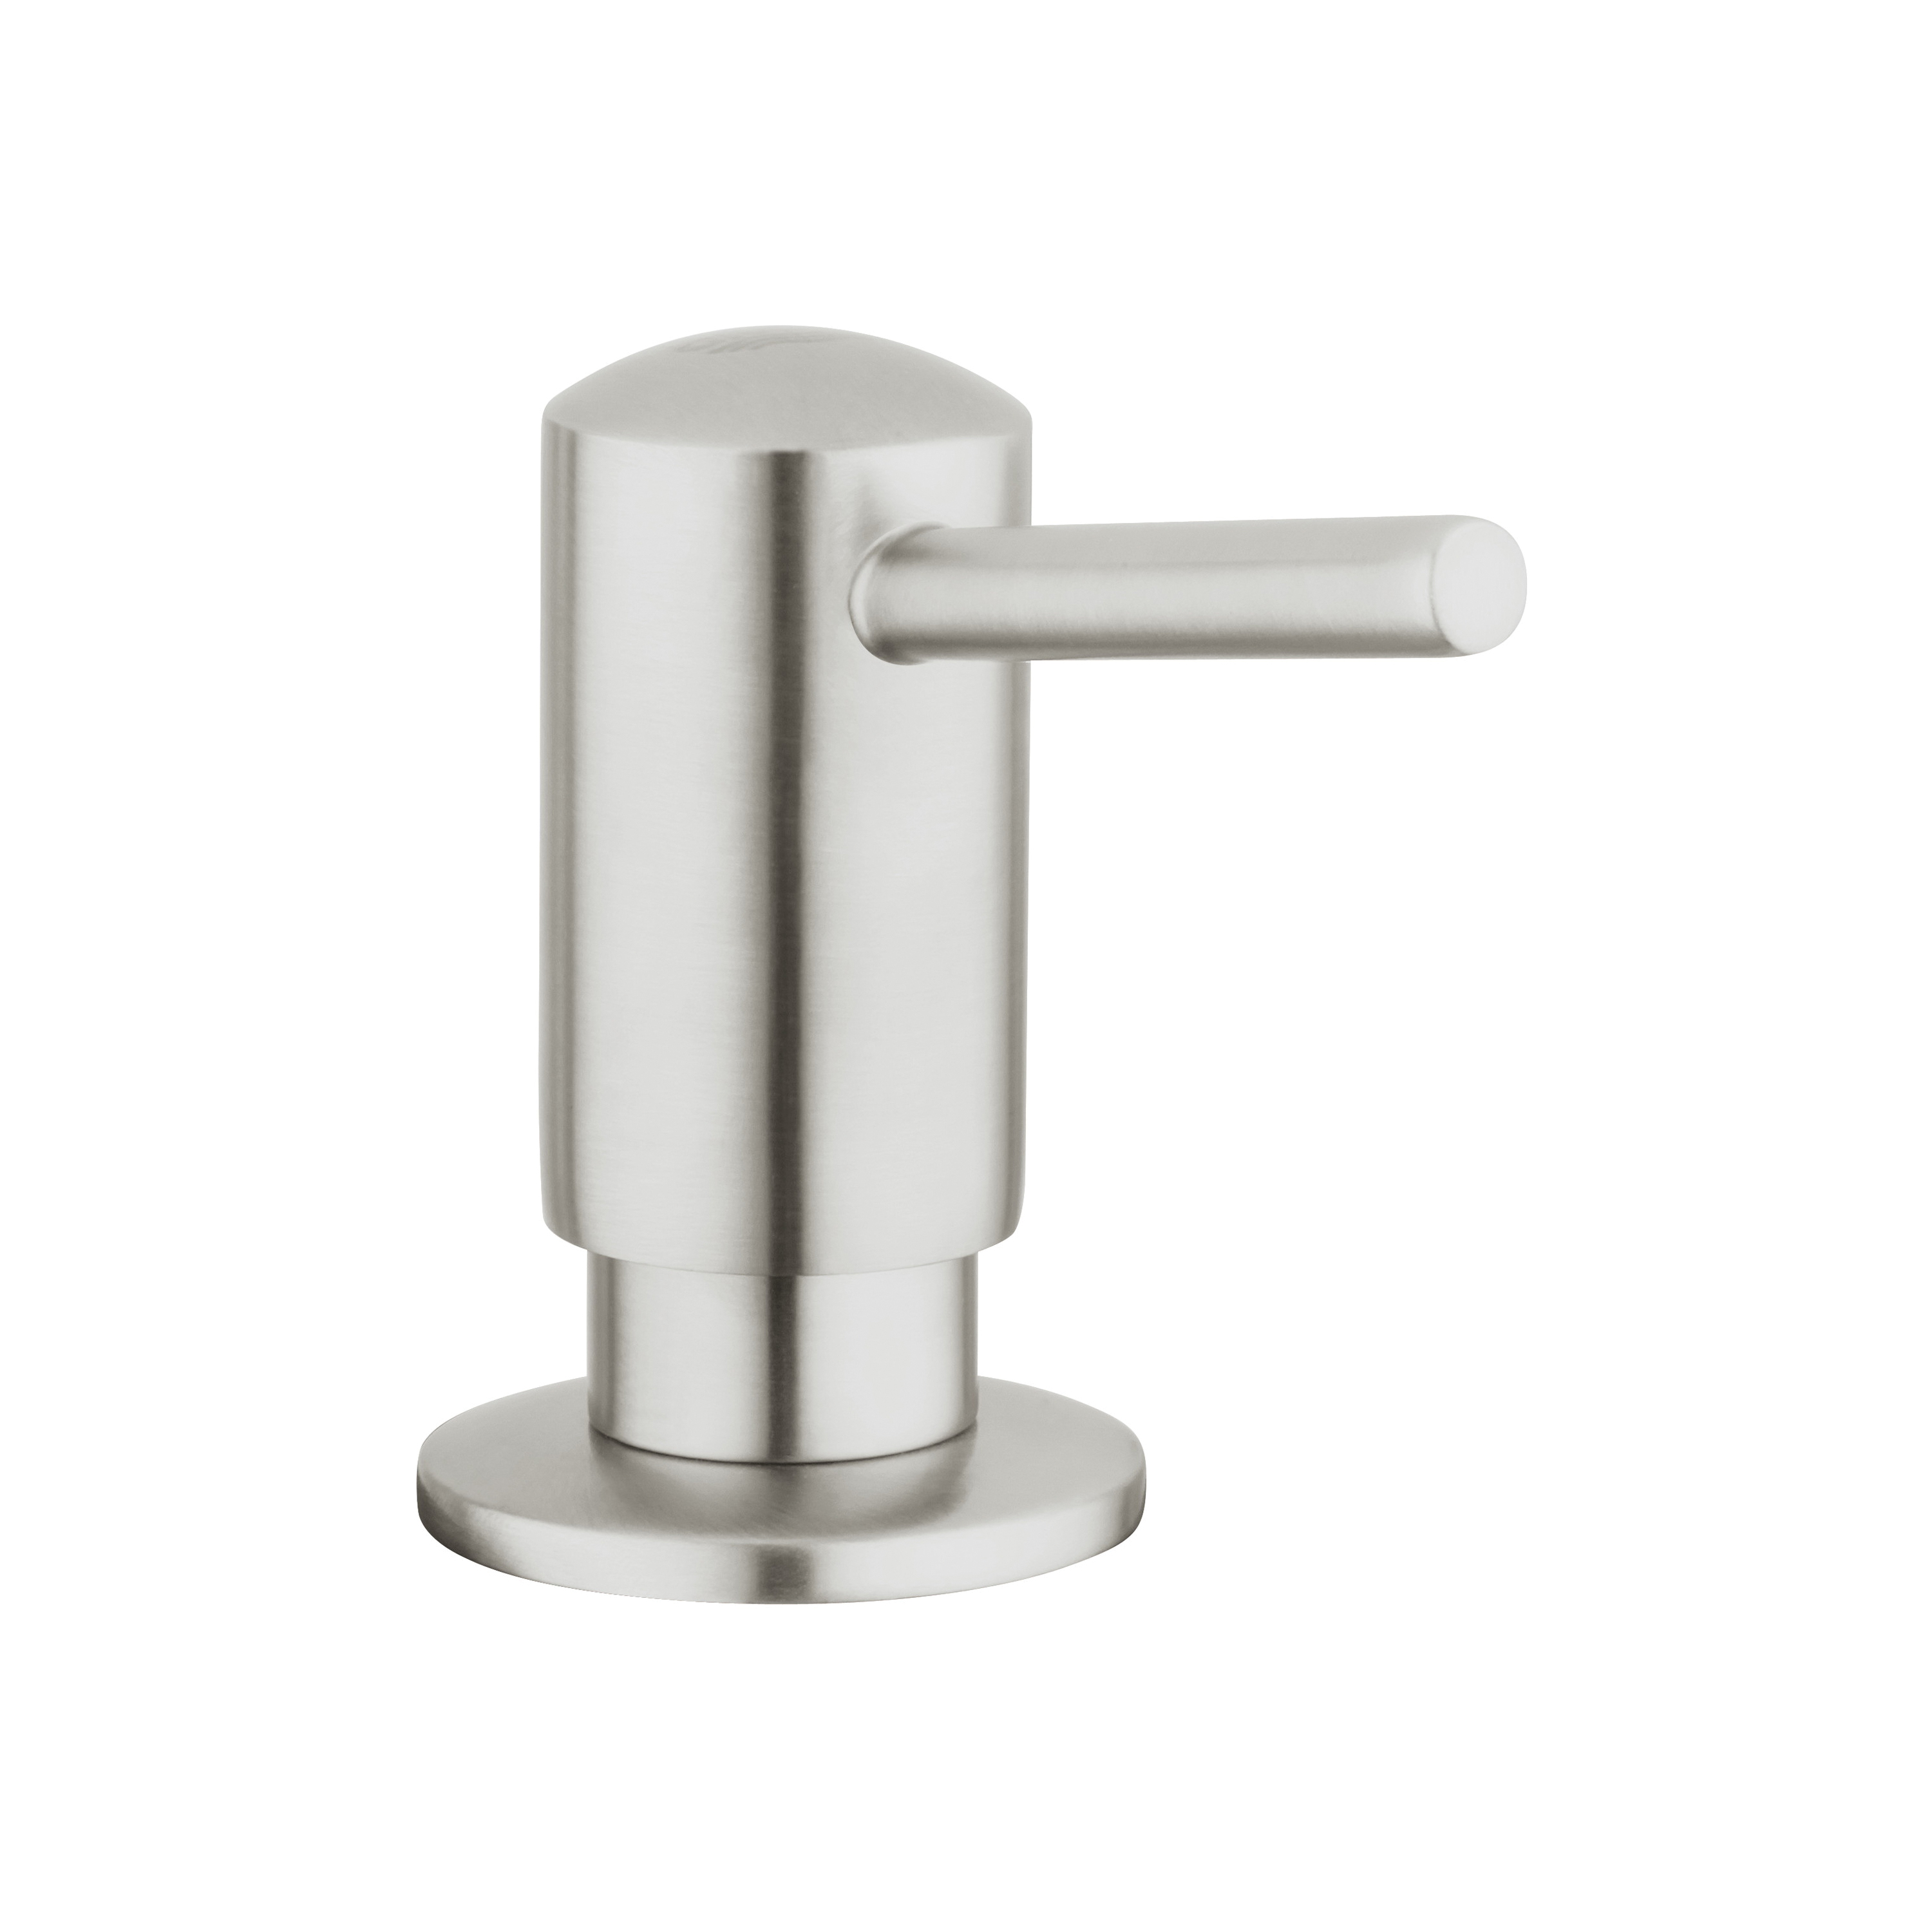 GROHE 40536DC0 Contemporary Soap Dispenser, 15 oz, Deck Mount, Brass, SuperSteel